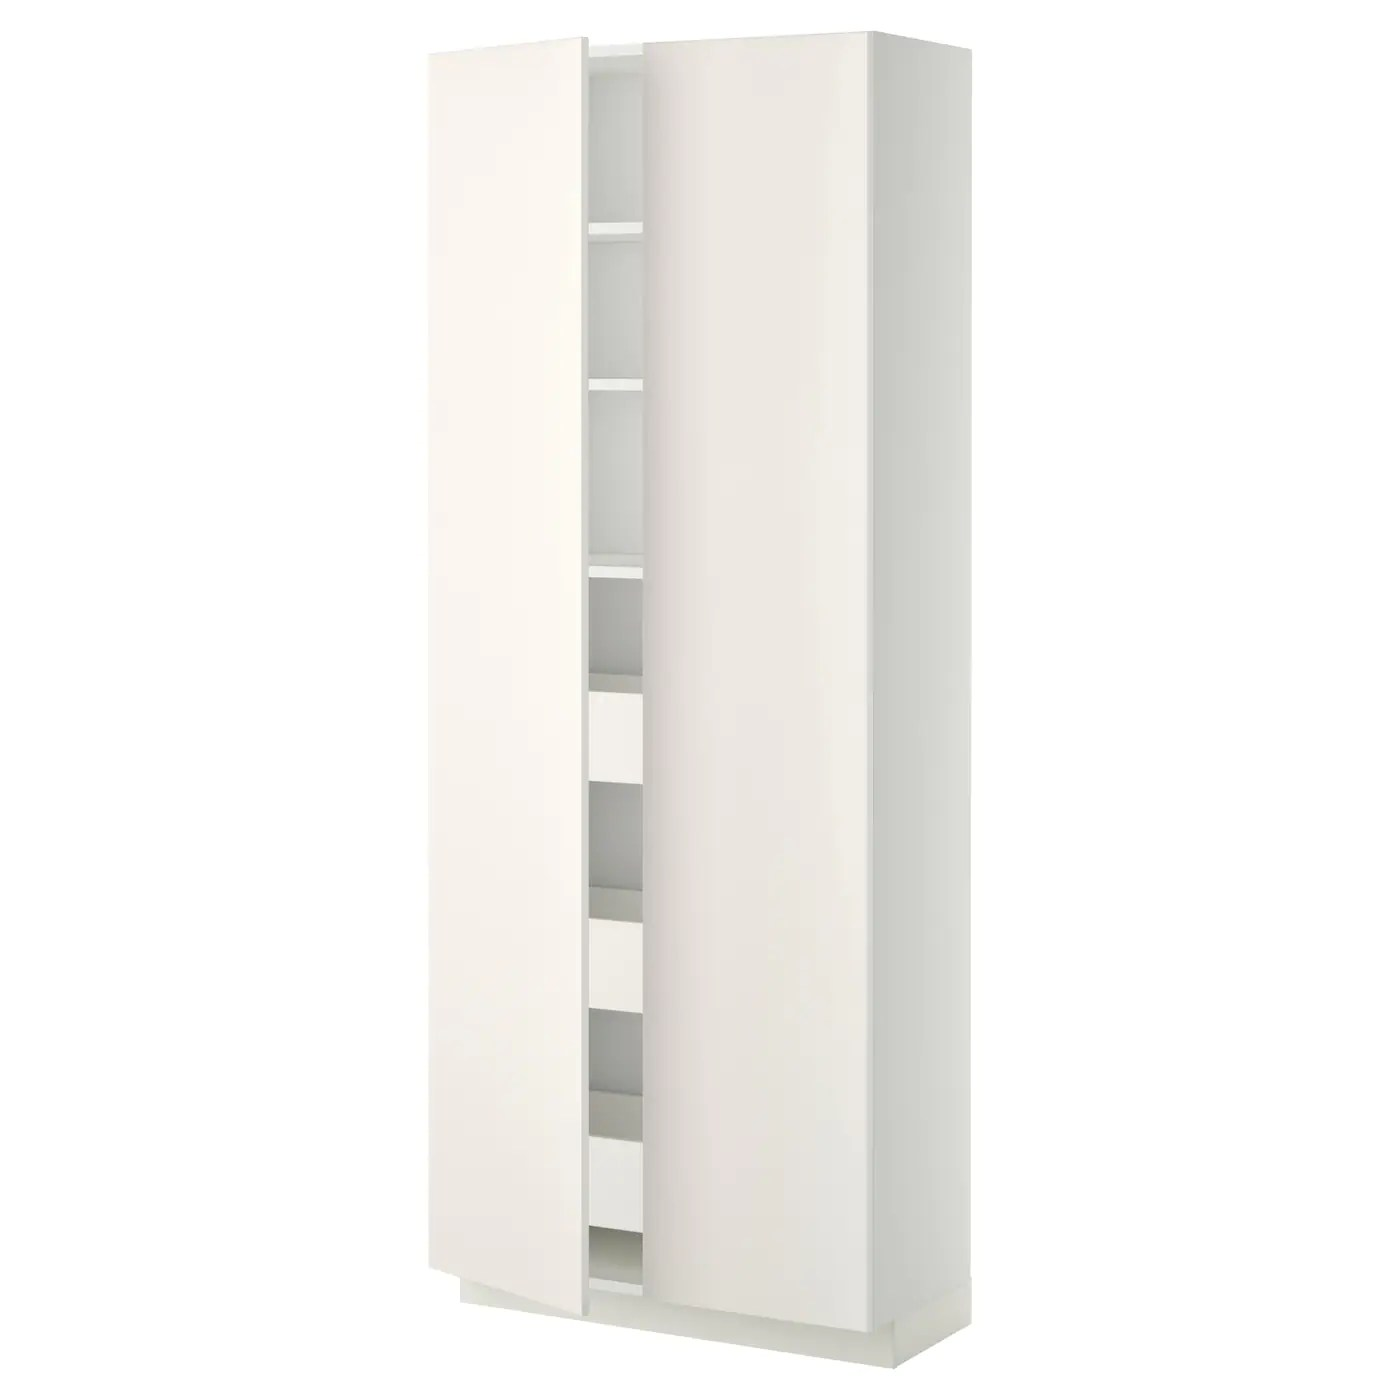 Besenschrank Ikea Metod Maximera Hi Cab With Drawers 2 Doors White Veddinge